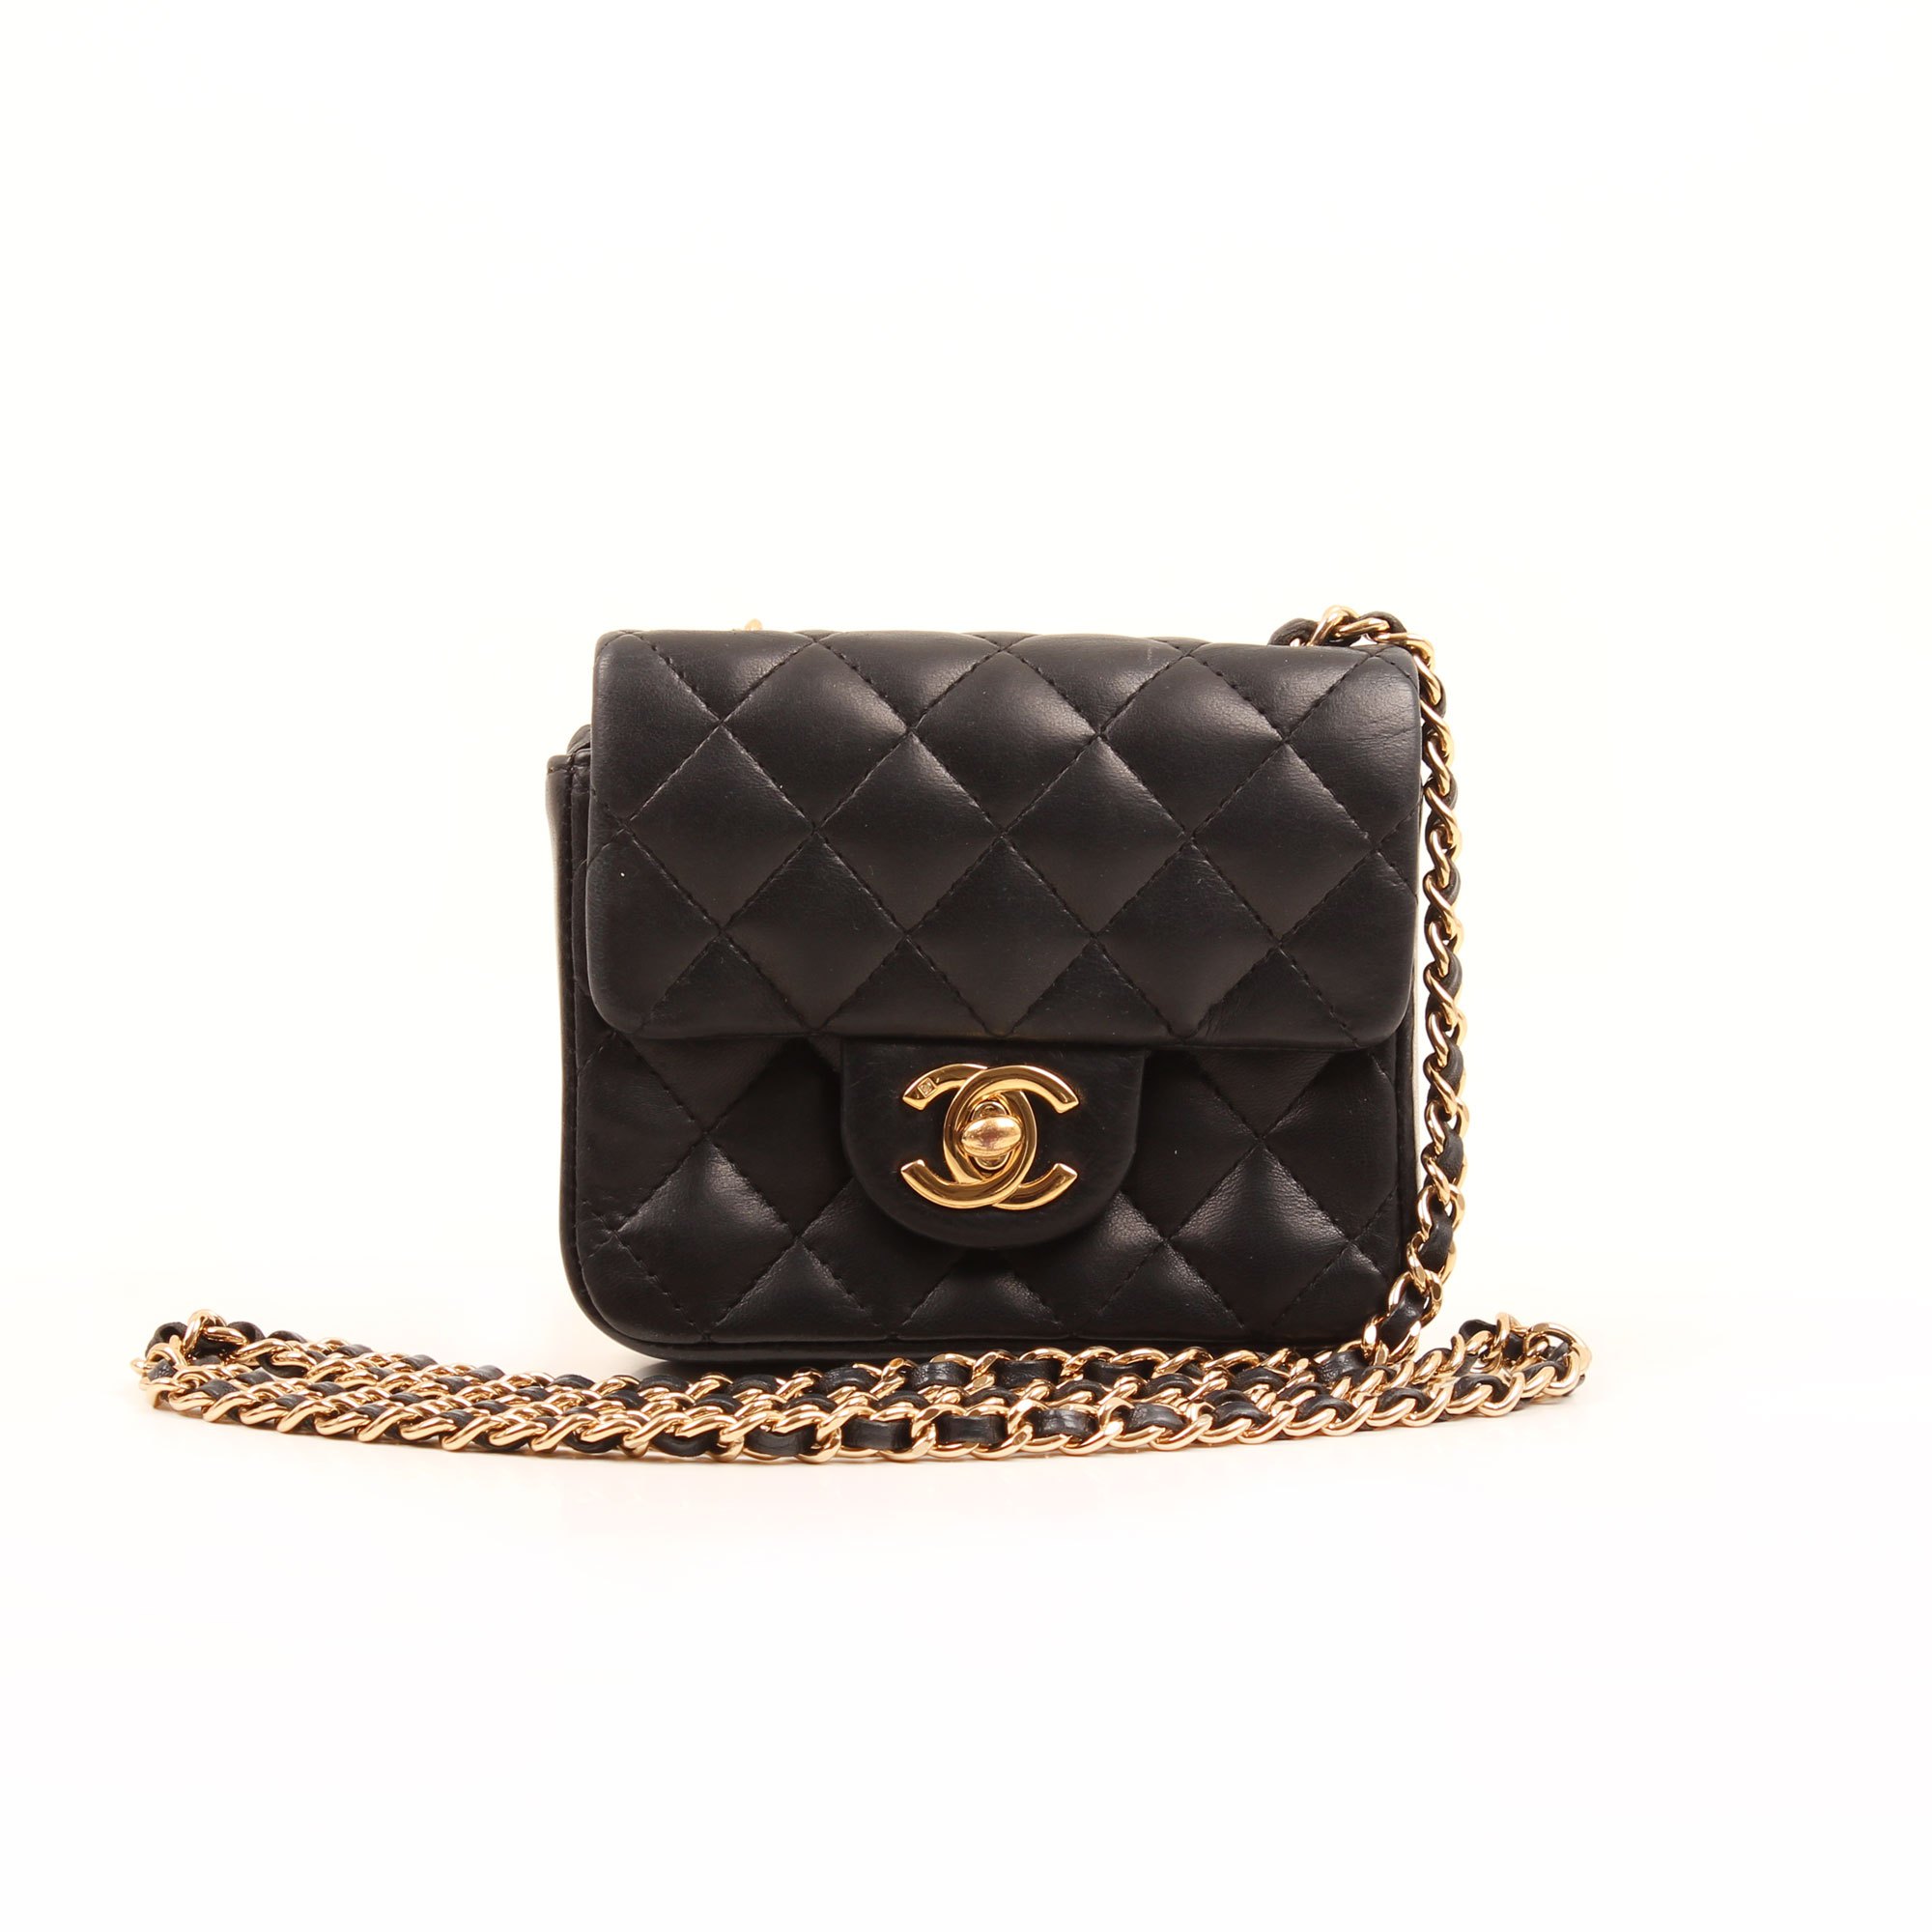 Imagen frontal del bolso chanel micro mini black